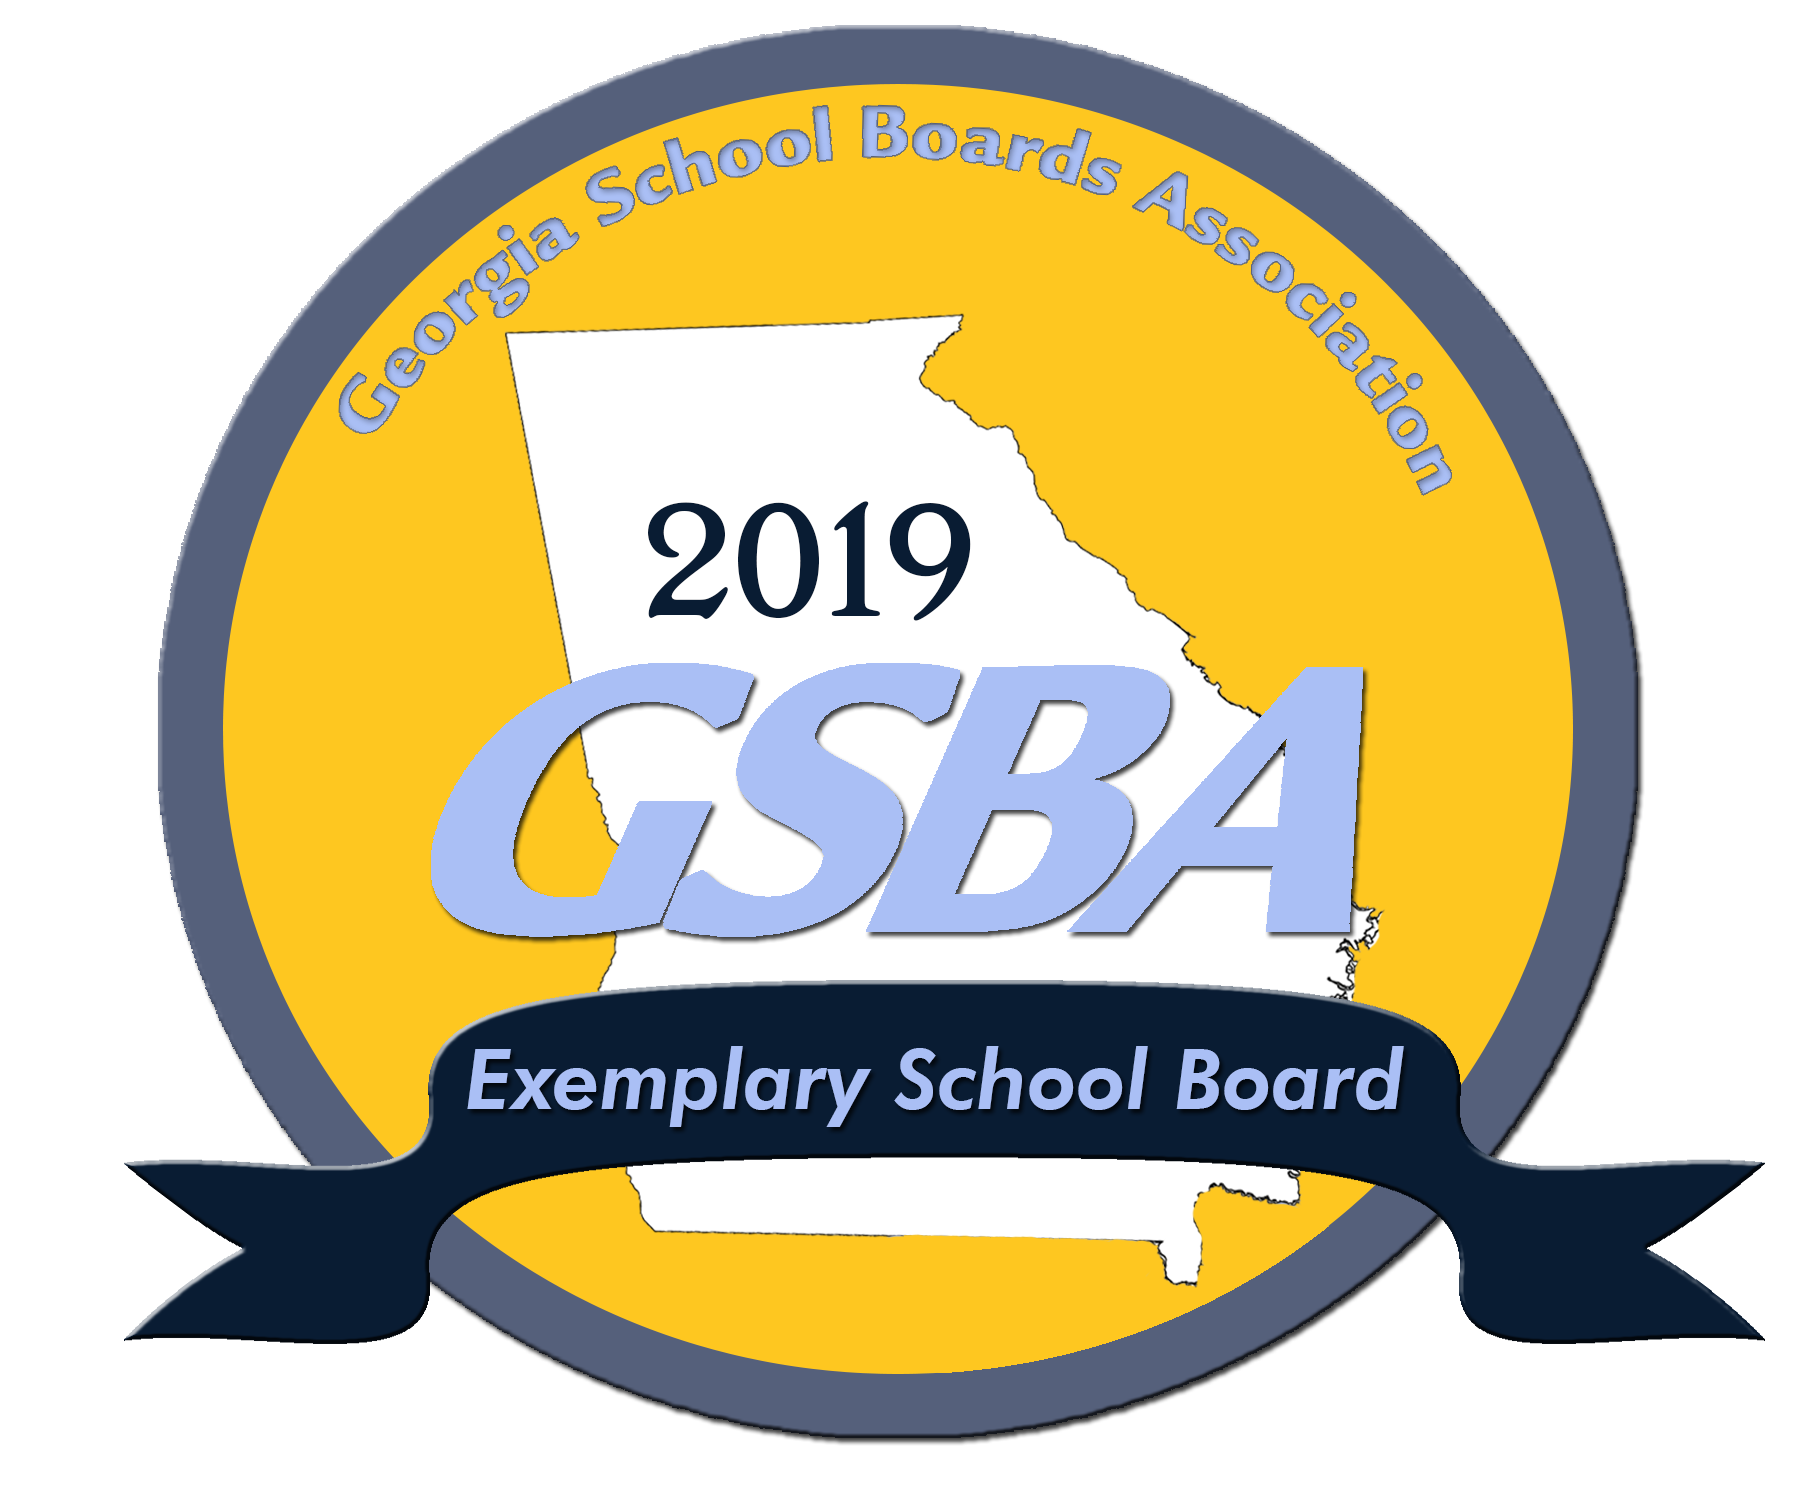 GSBA 2019 Exemplary School Board